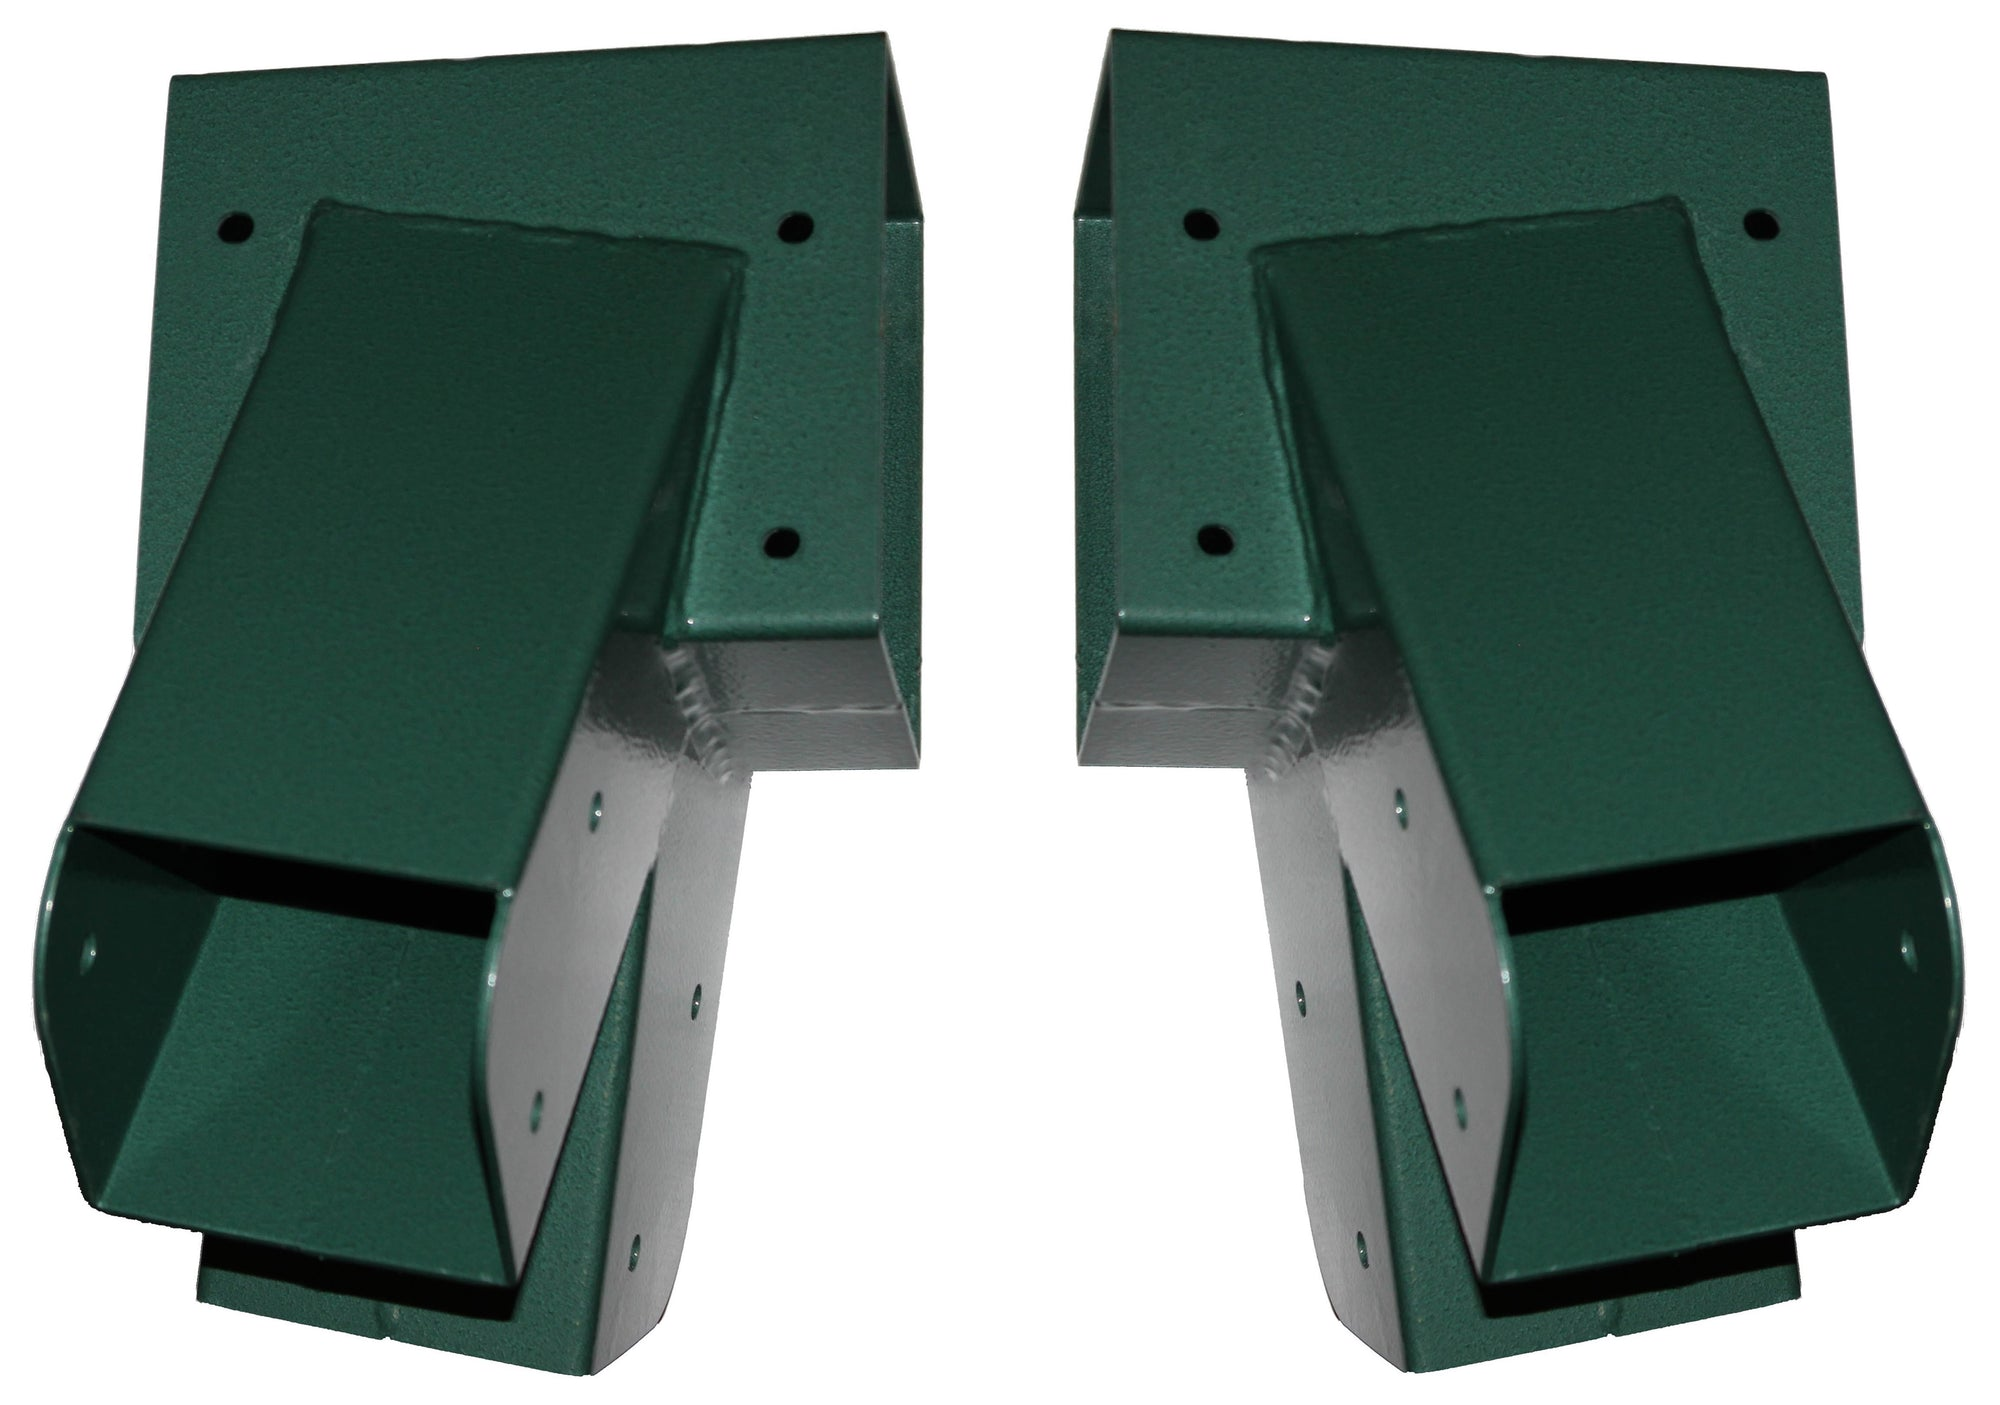 Jungle Gym Kingdom A-Frame 2 Brackets for Swing Set with All Mounting Hardware Green